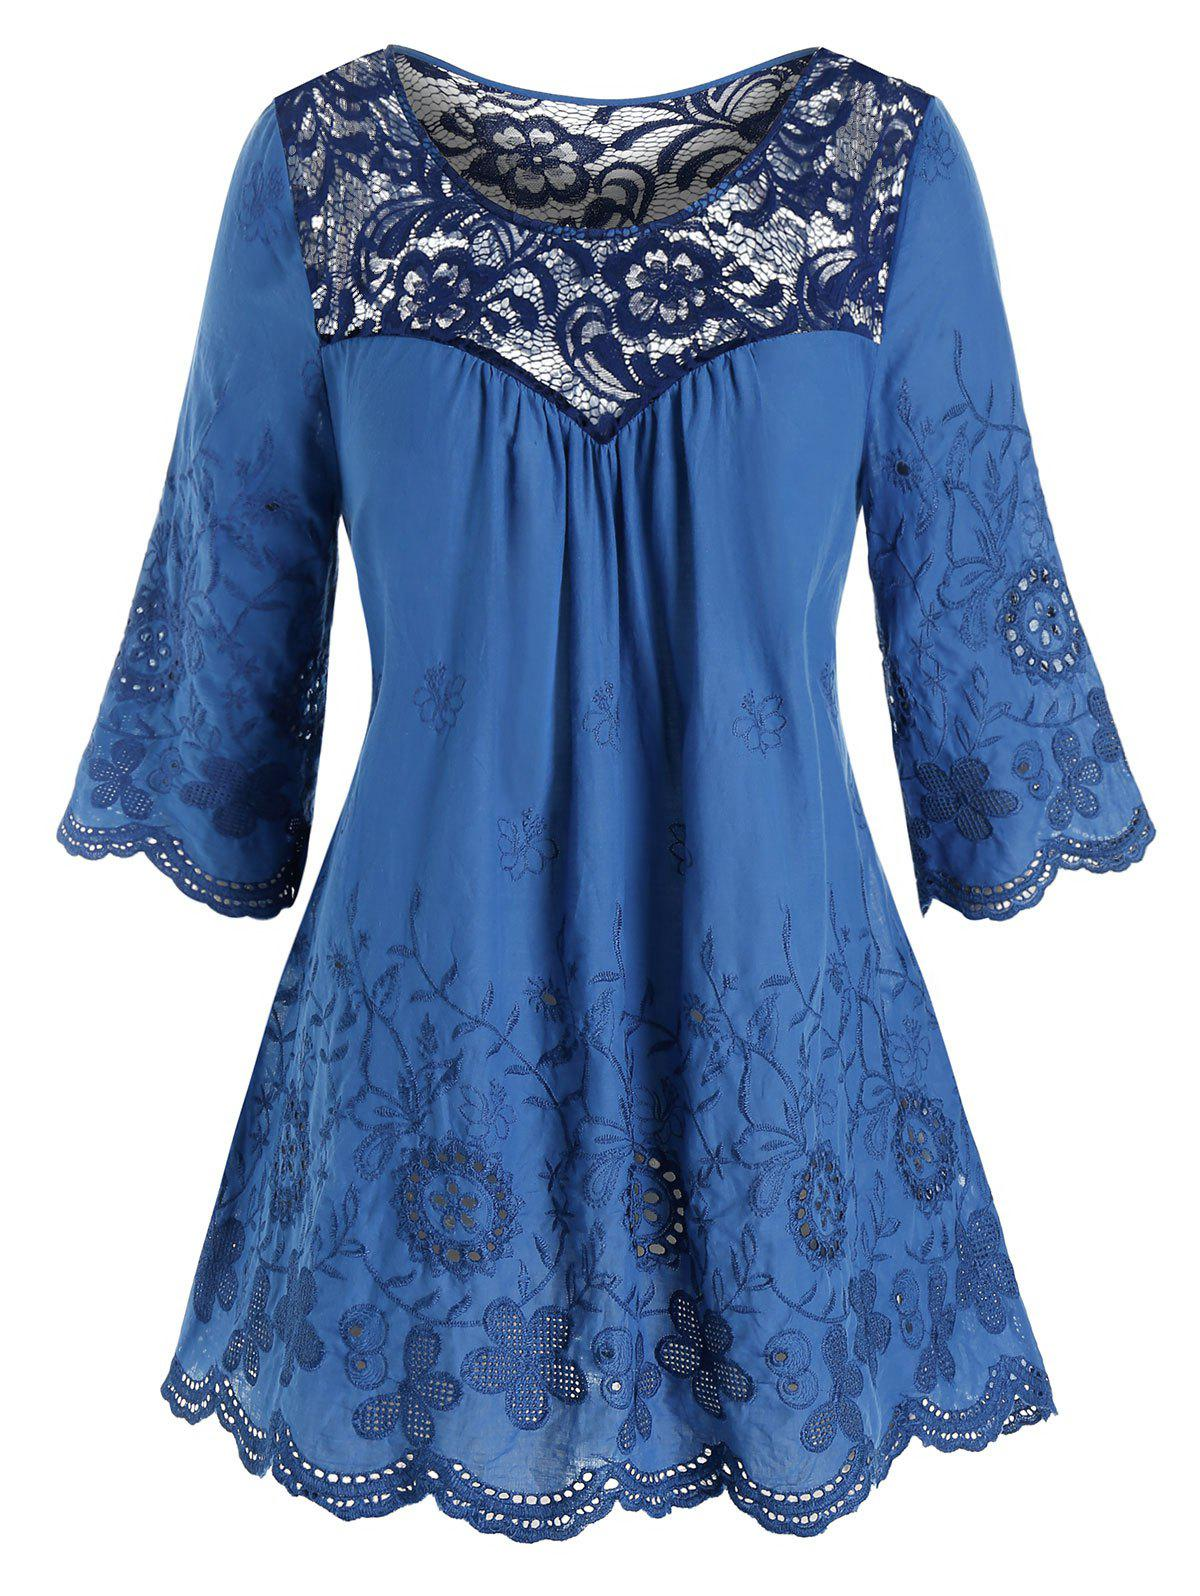 Plus Size Lace Yoke Sheer Embroidered Eyelet Top - MIDNIGHT BLUE 5X